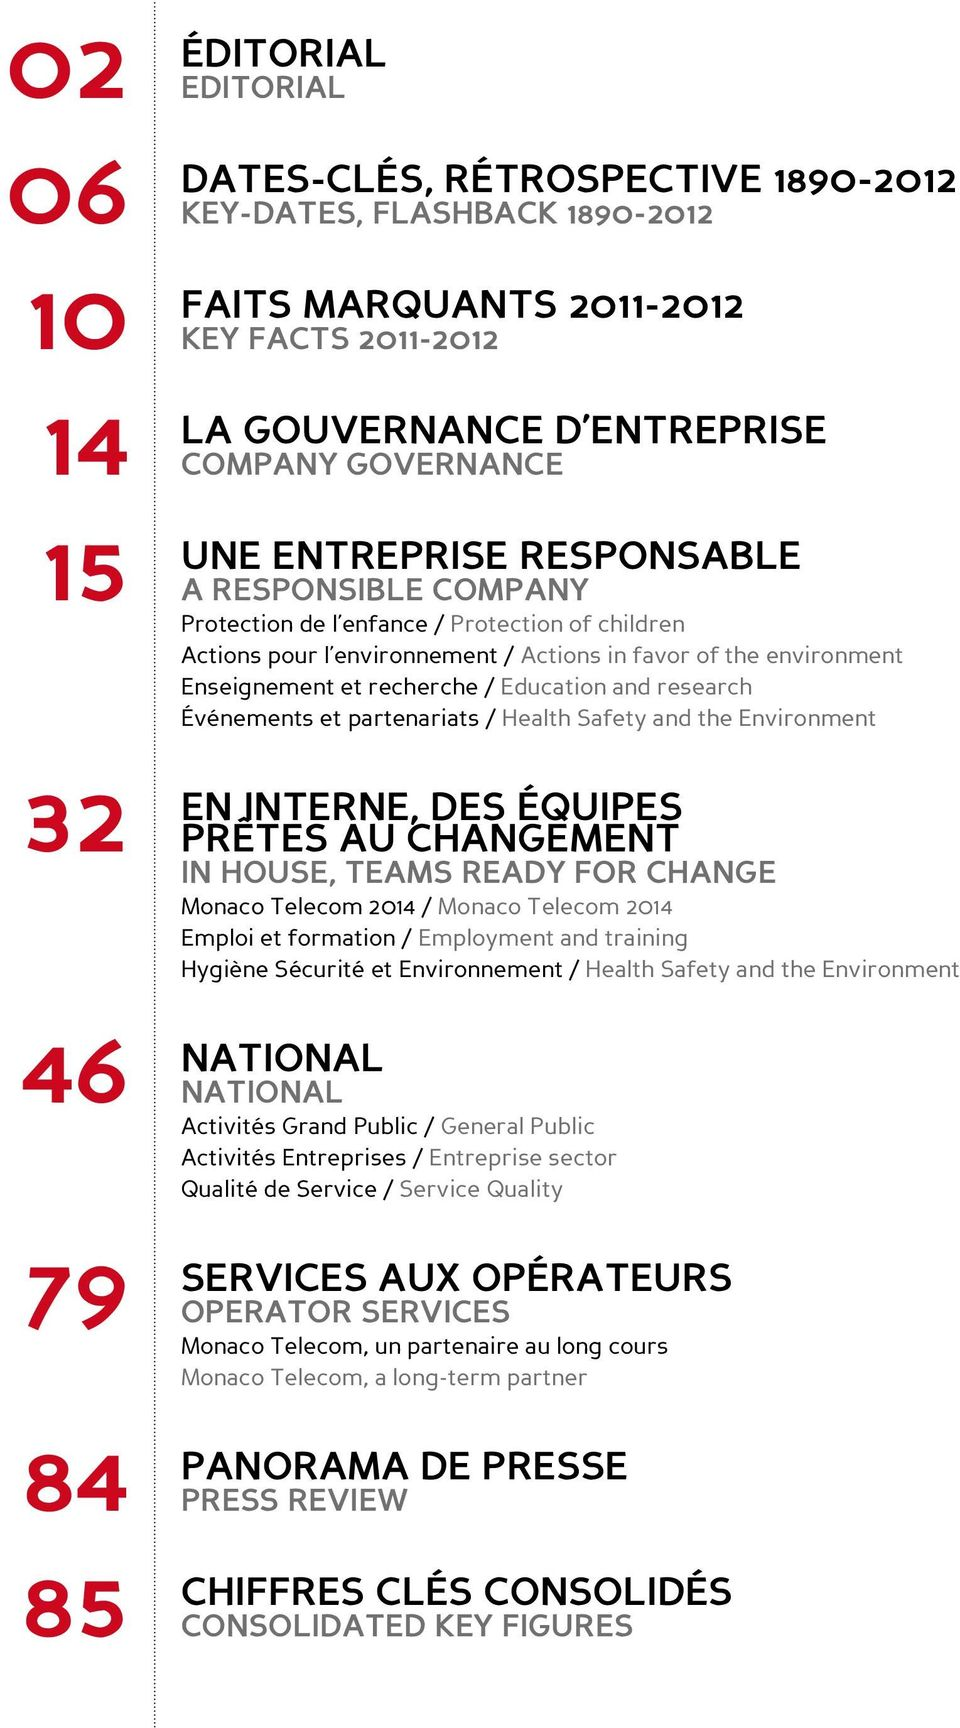 recherche / Education and research Événements et partenariats / Health Safety and the Environment EN INTERNE, DES ÉQUIPES PRÊTES AU CHANGEMENT IN HOUSE, Teams ready for change Monaco Telecom 2014 /